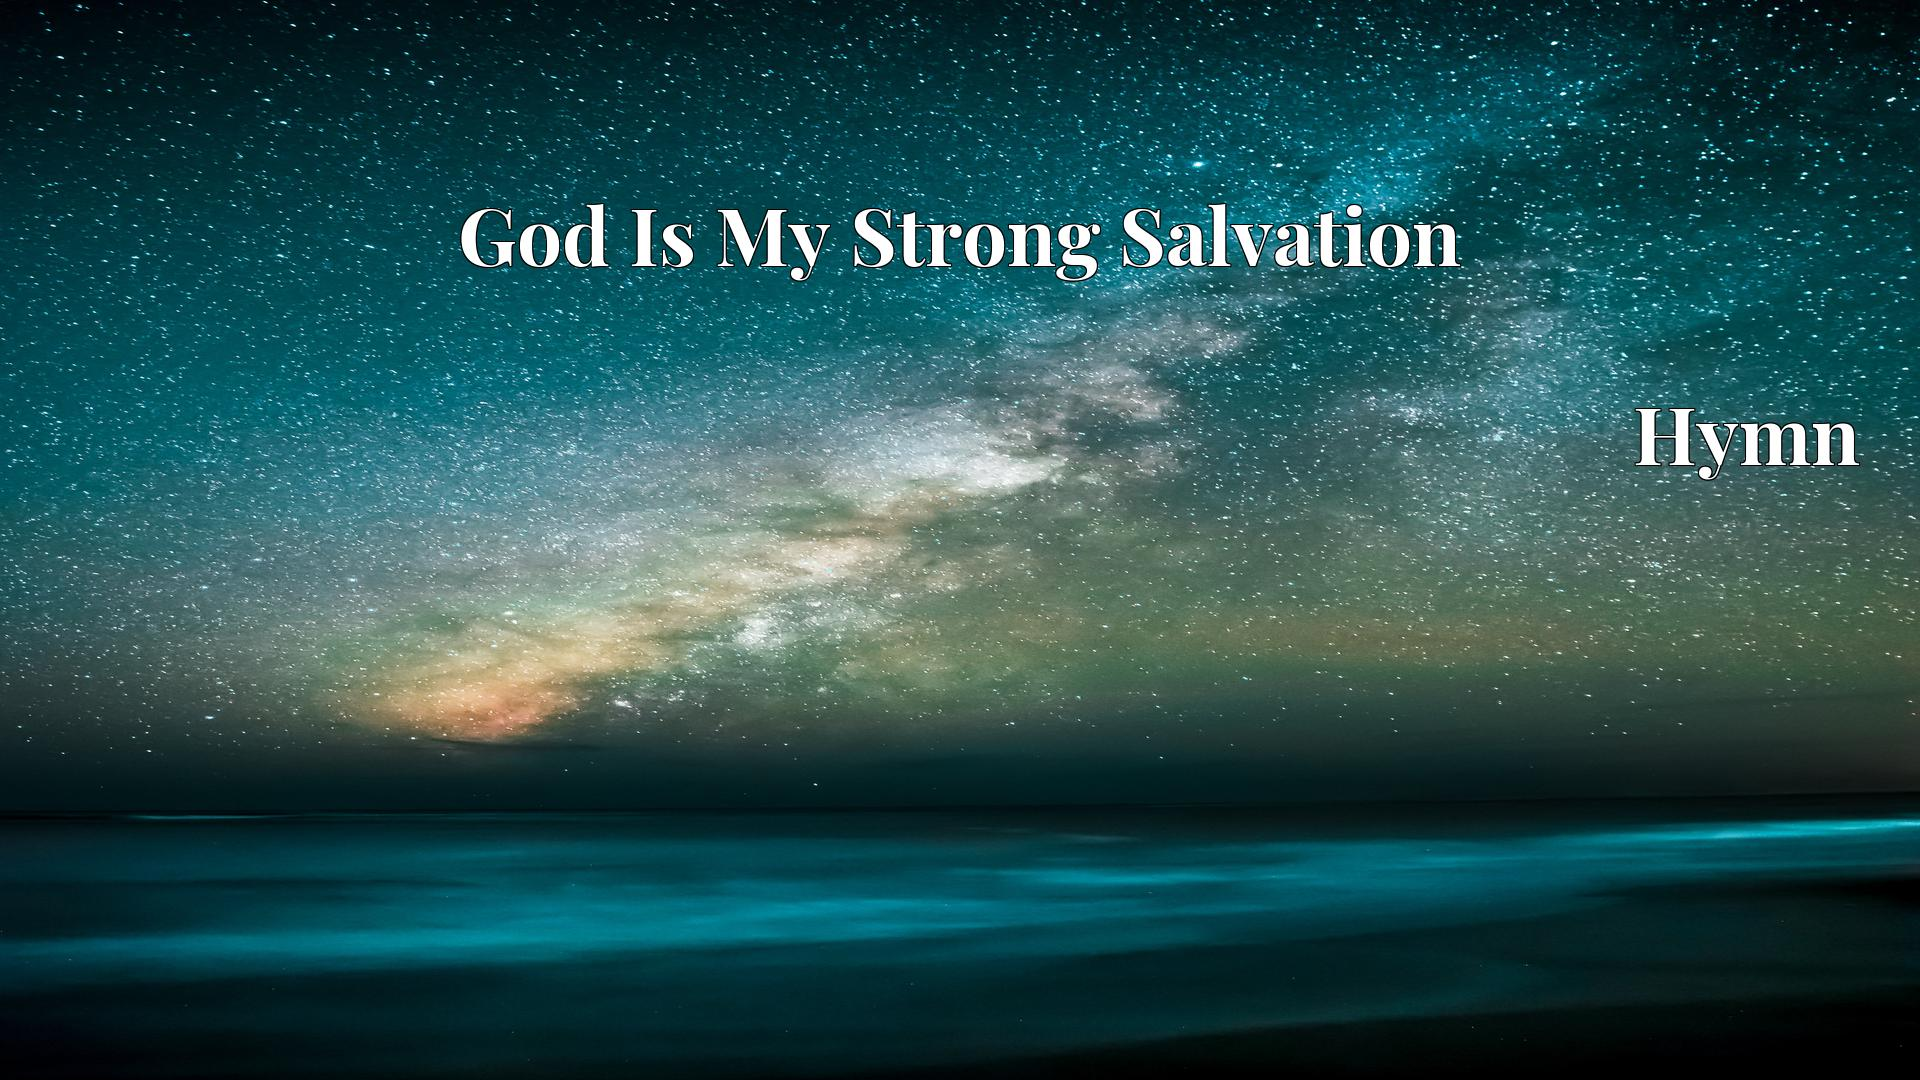 God Is My Strong Salvation - Hymn